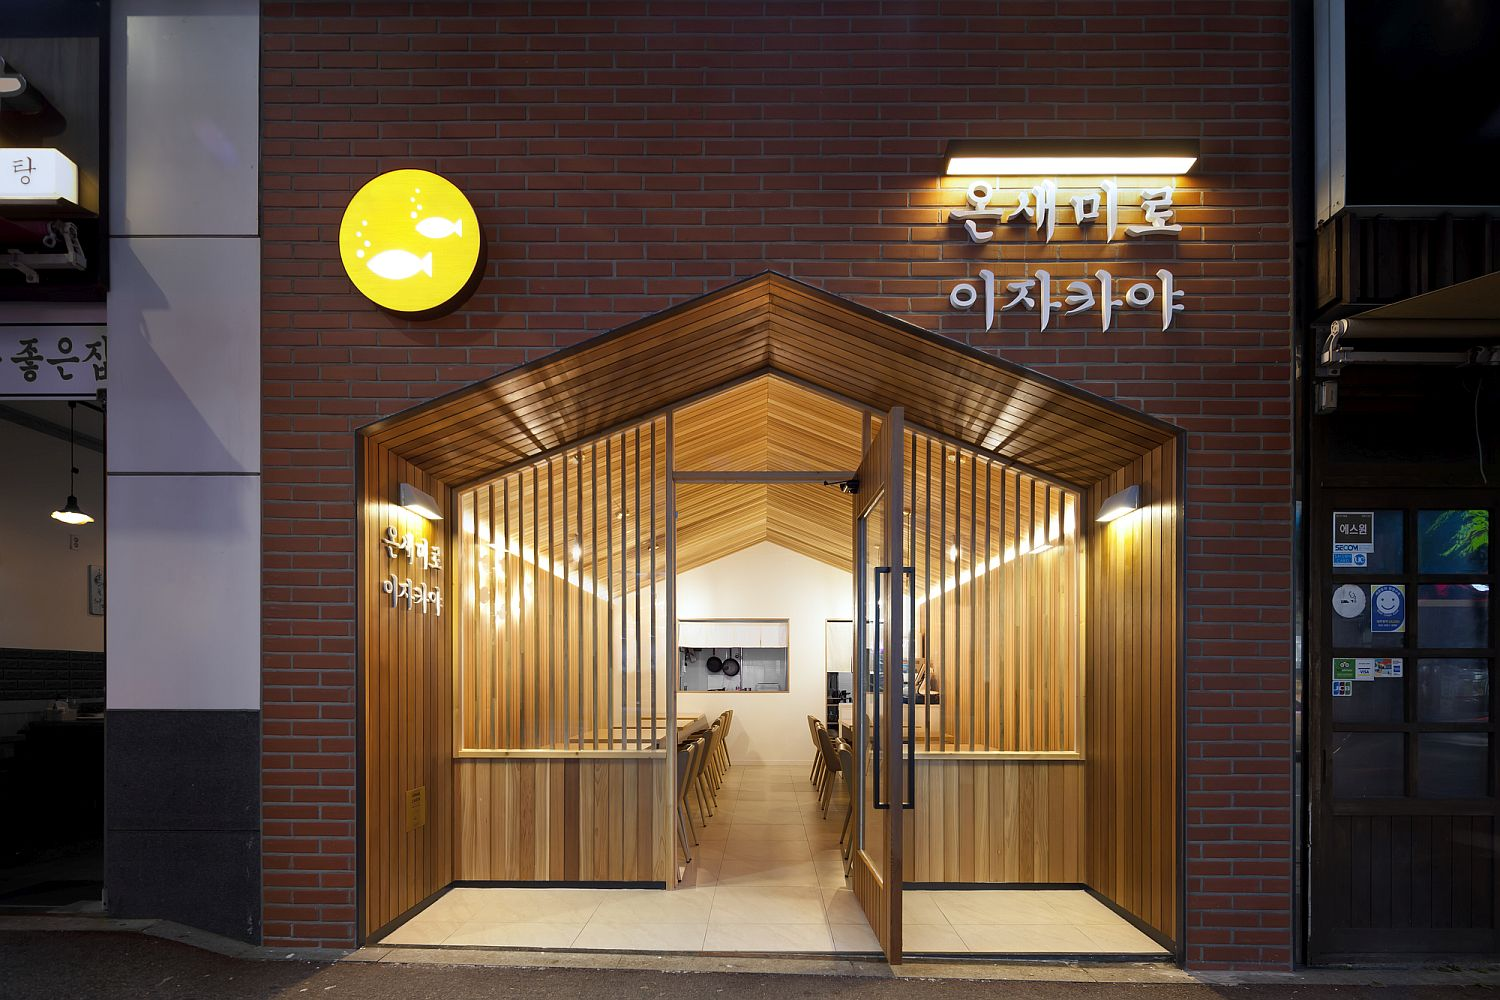 Urban Cabin: Small, Space-Conscious Restaurant with Cozy Modern Ambiance